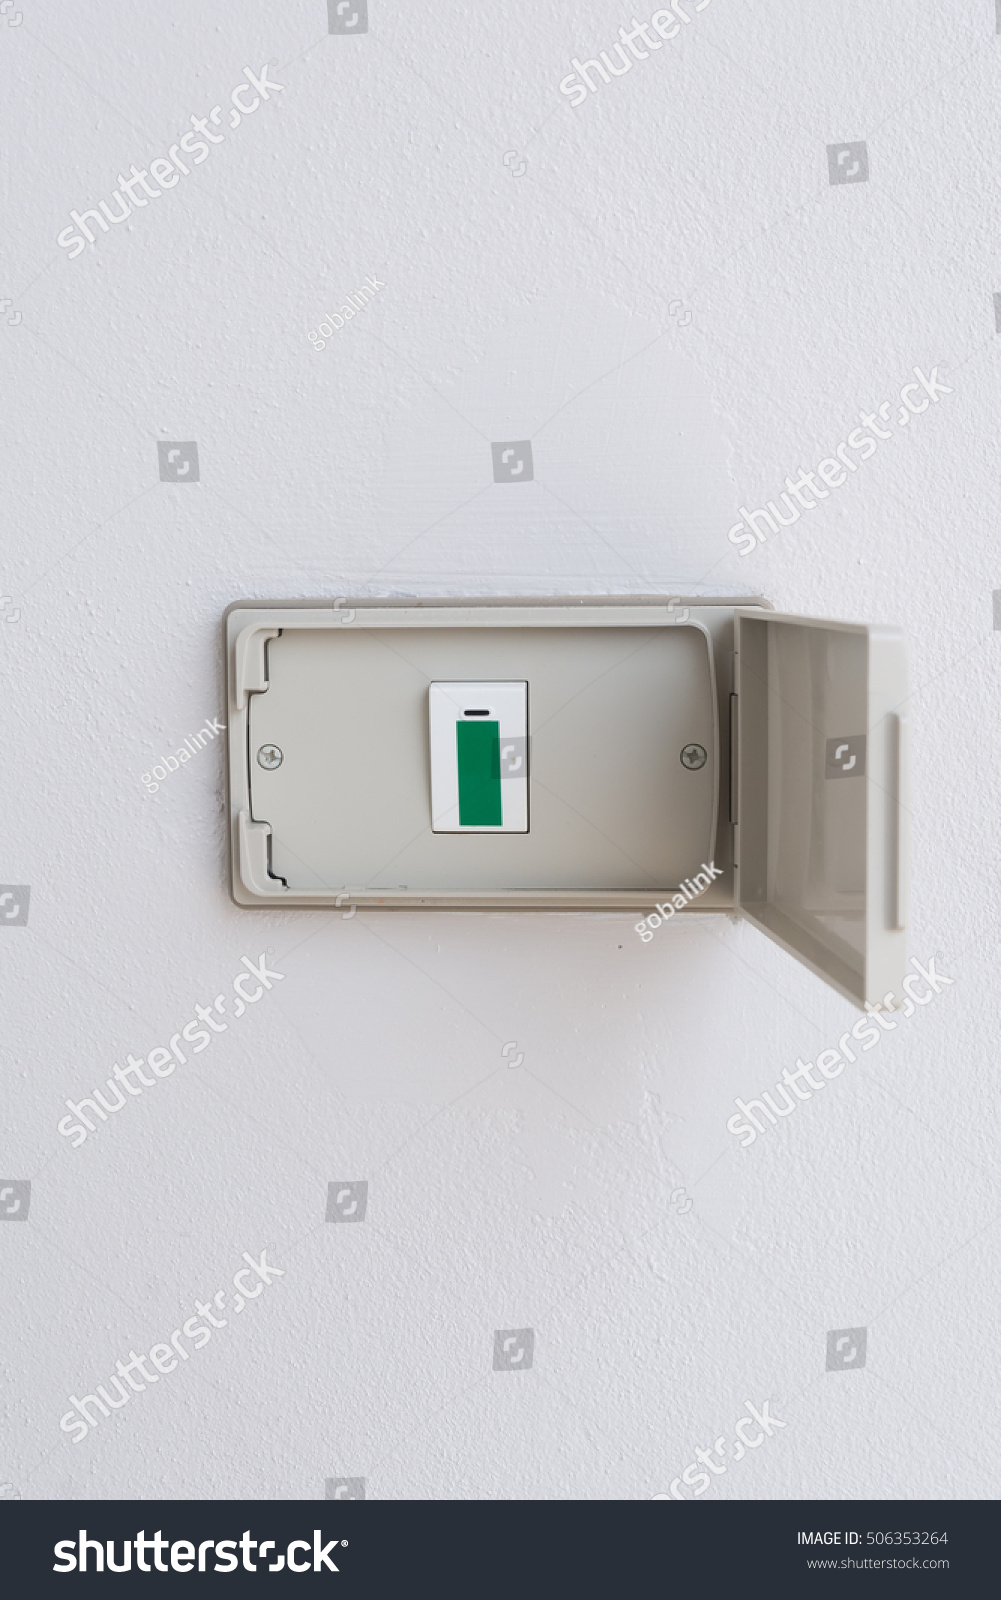 Weatherproof outdoor light power switch on the wall | EZ Canvas